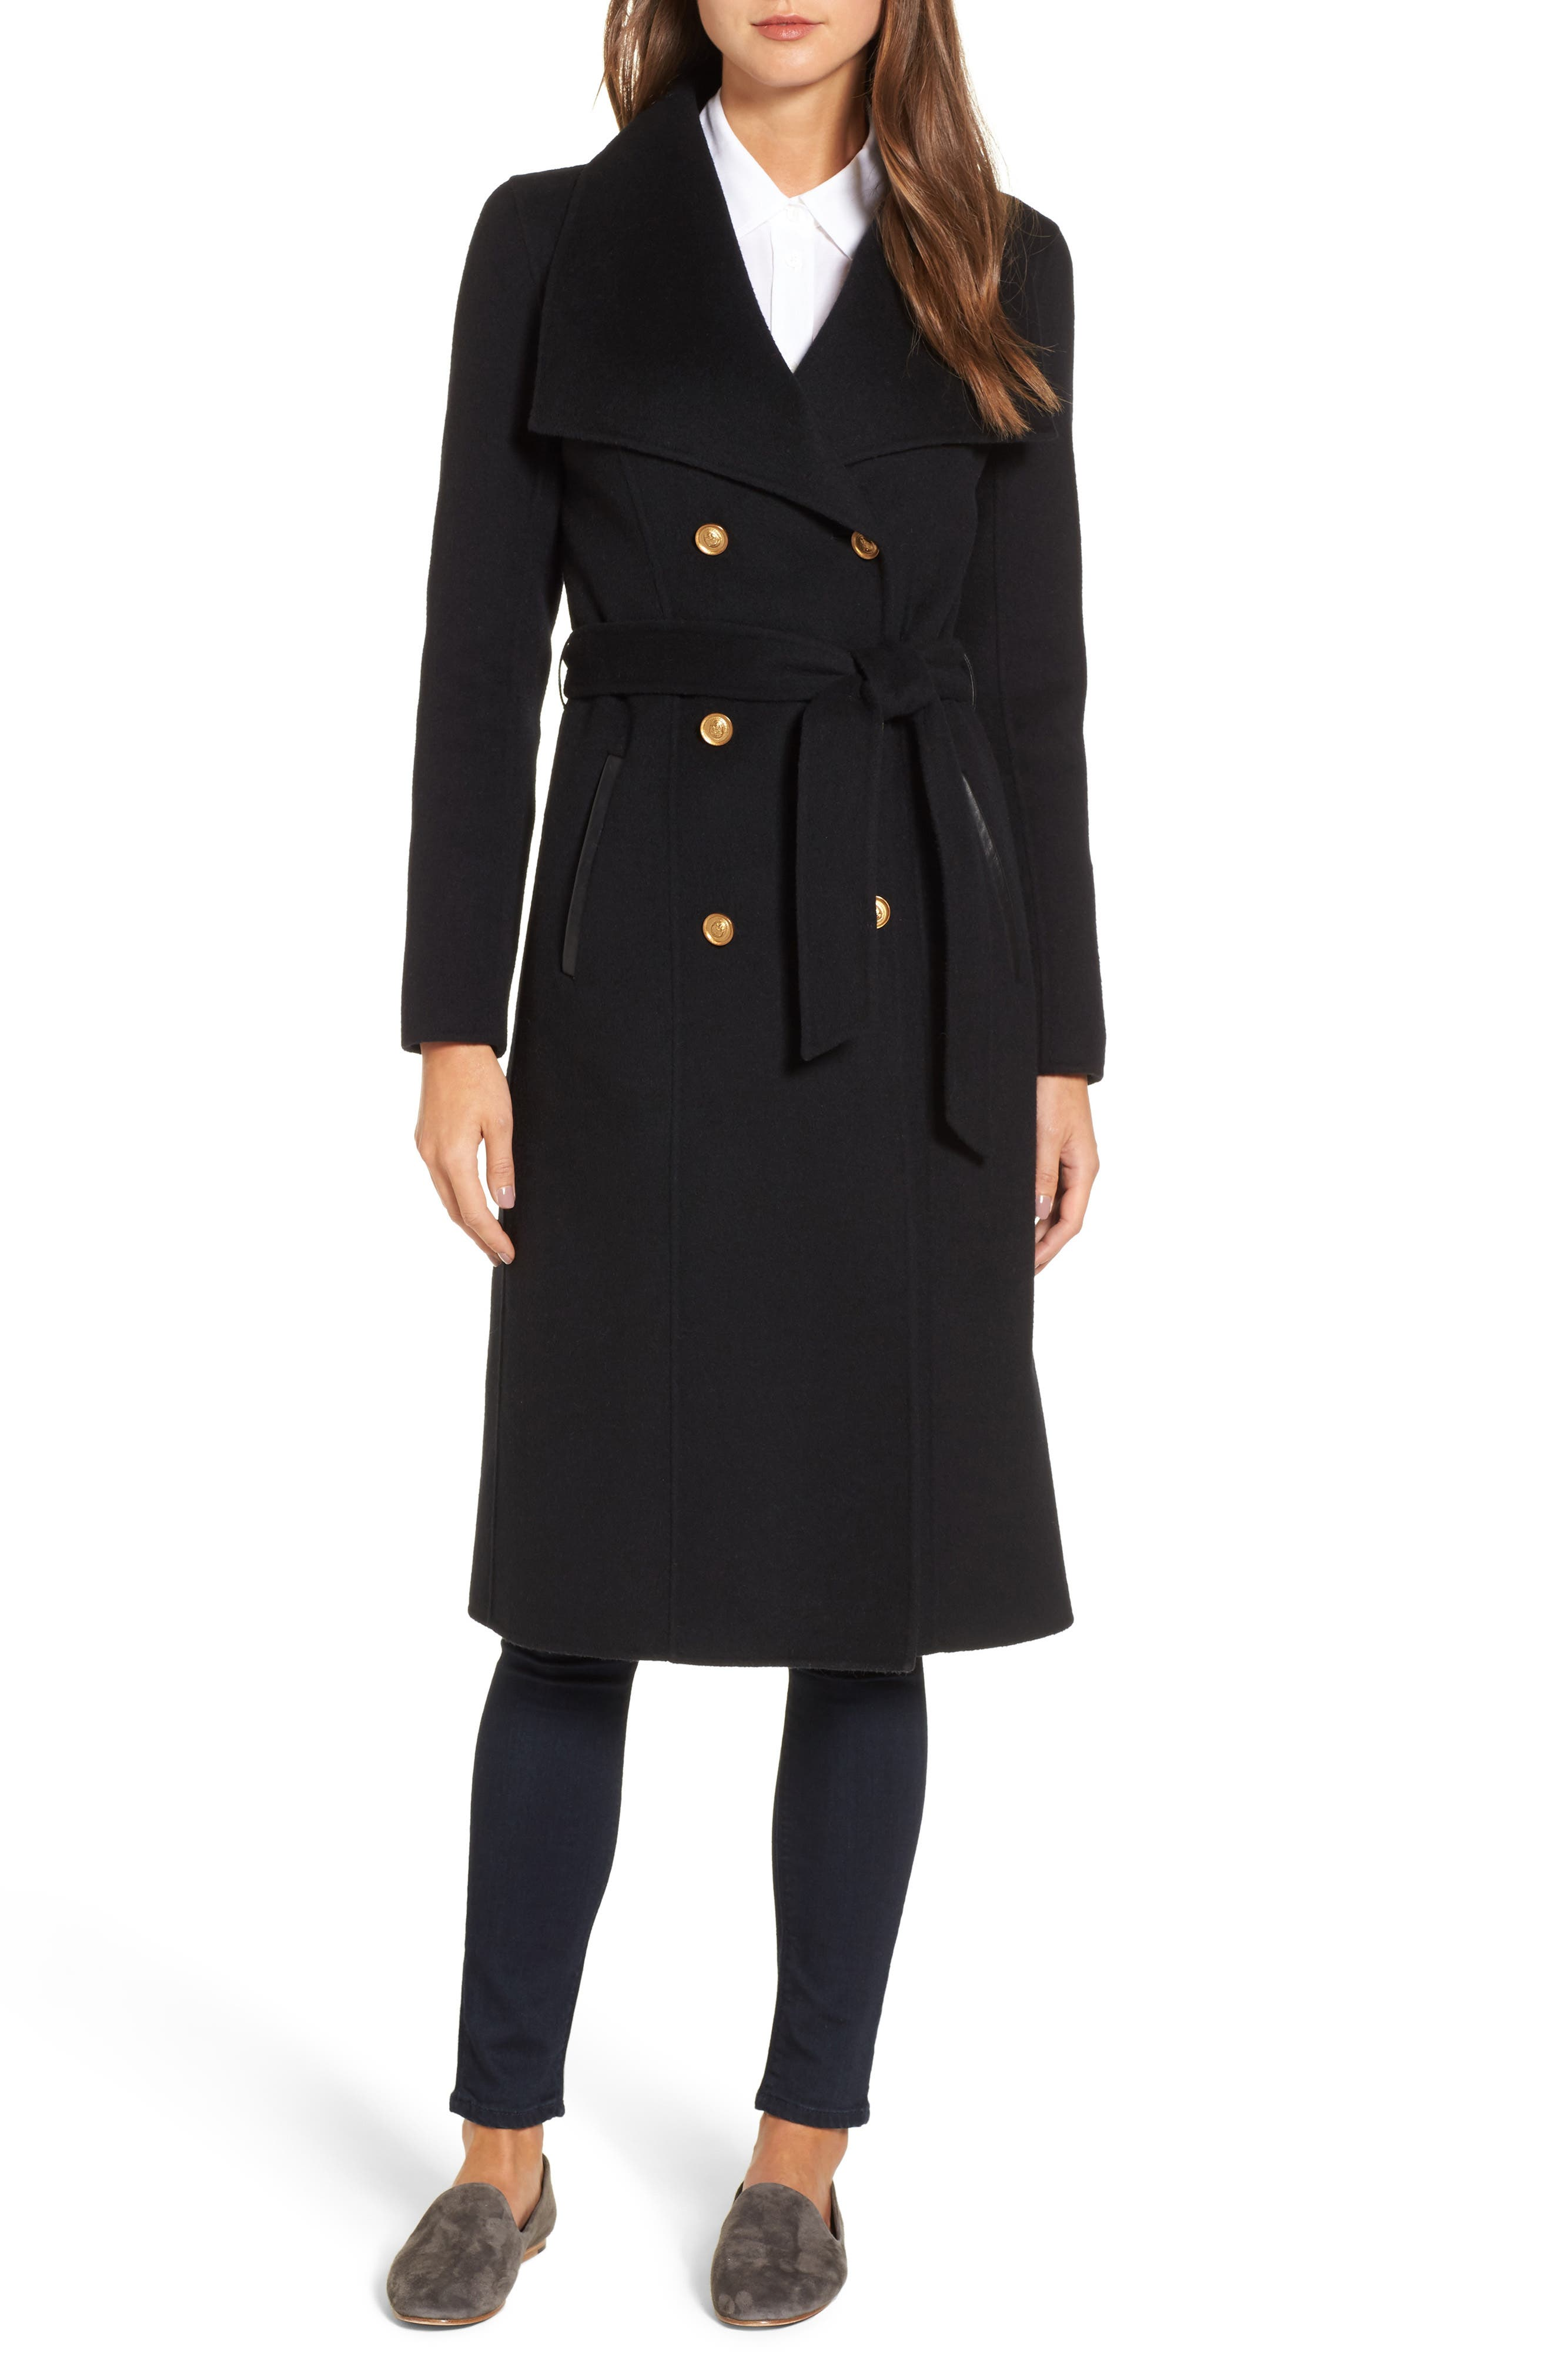 Norah-N Double Breasted Wool Blend Long Military Coat,                         Main,                         color, Black